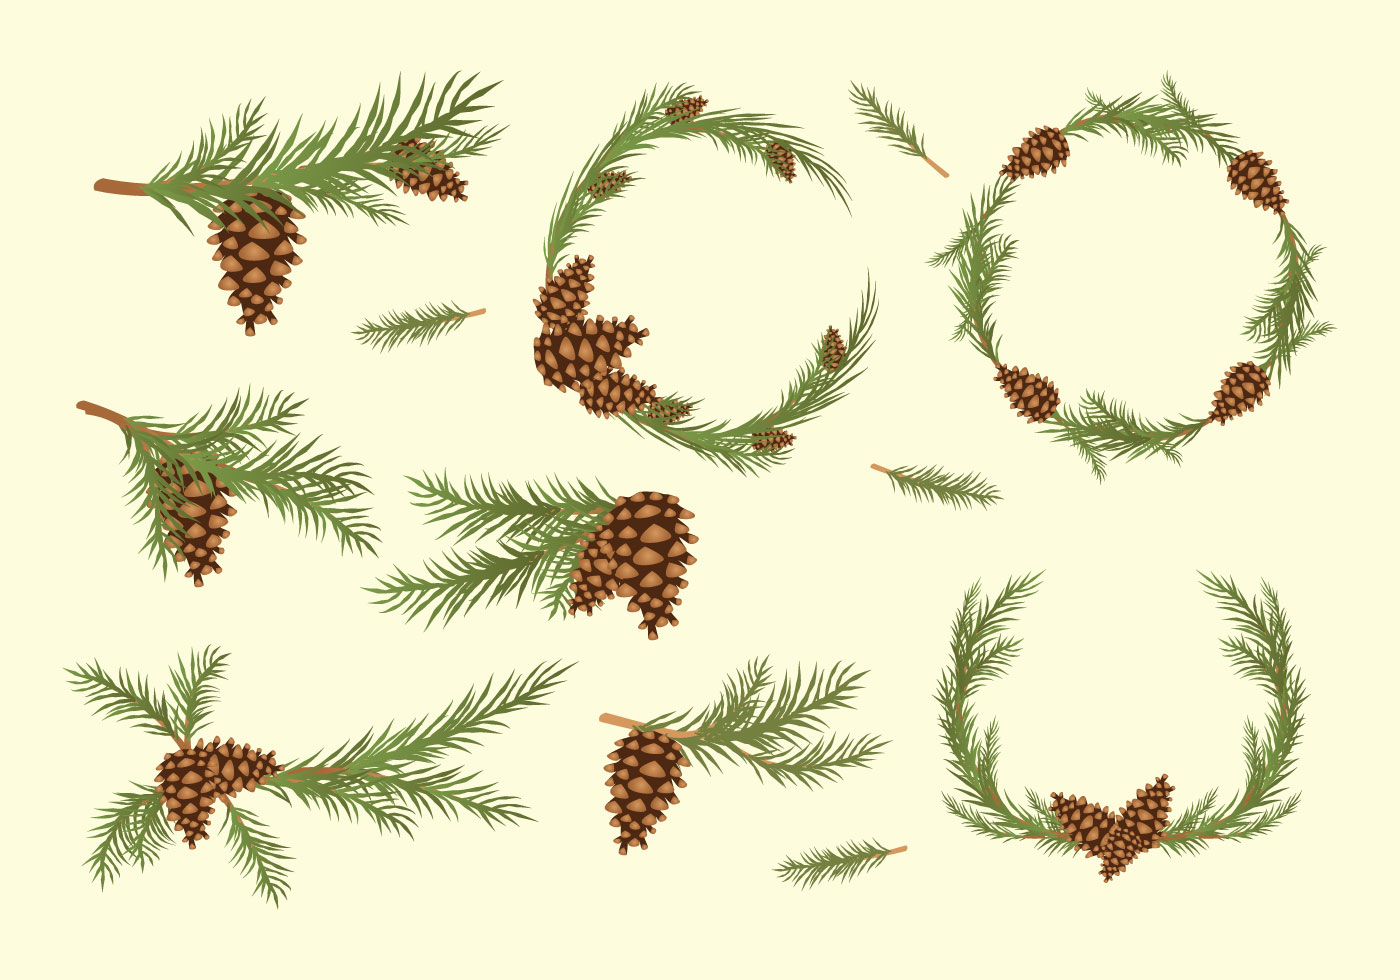 Free vintage pine cone holiday clipart clipart freeuse library Pine Cone Free Vector Art - (11,380 Free Downloads) clipart freeuse library